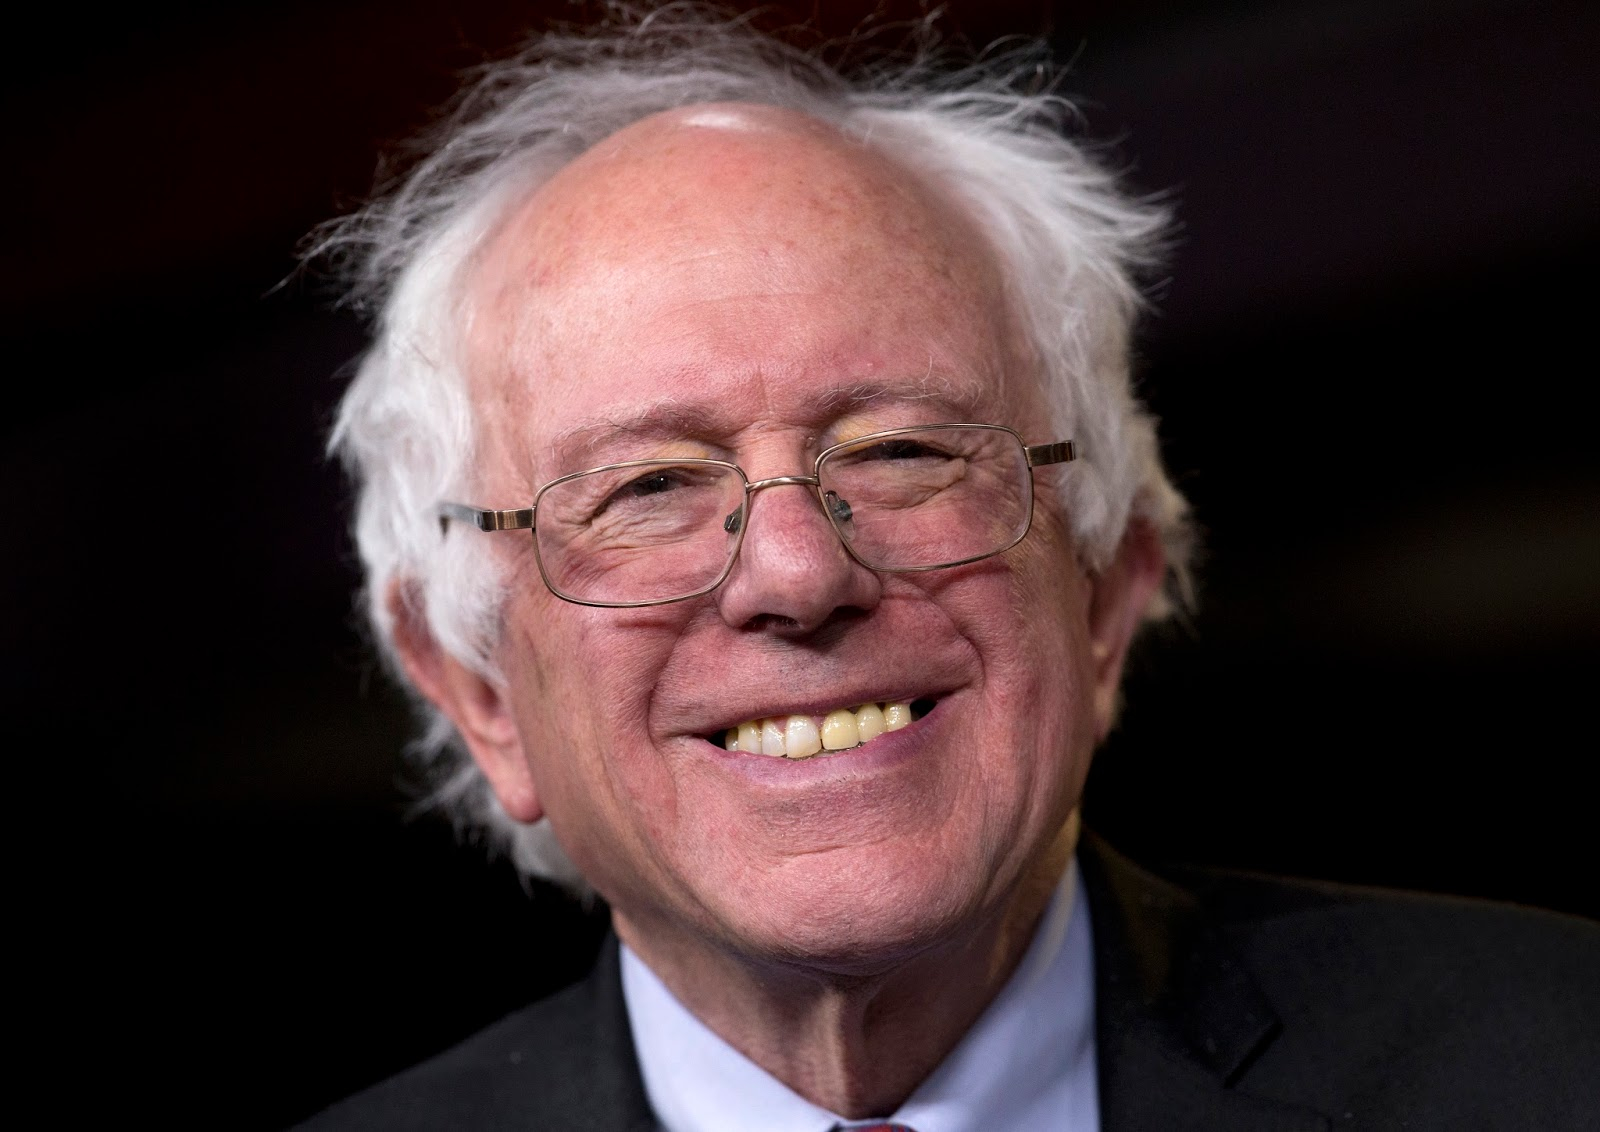 Bernie Sanders, Sweden and New Zealand